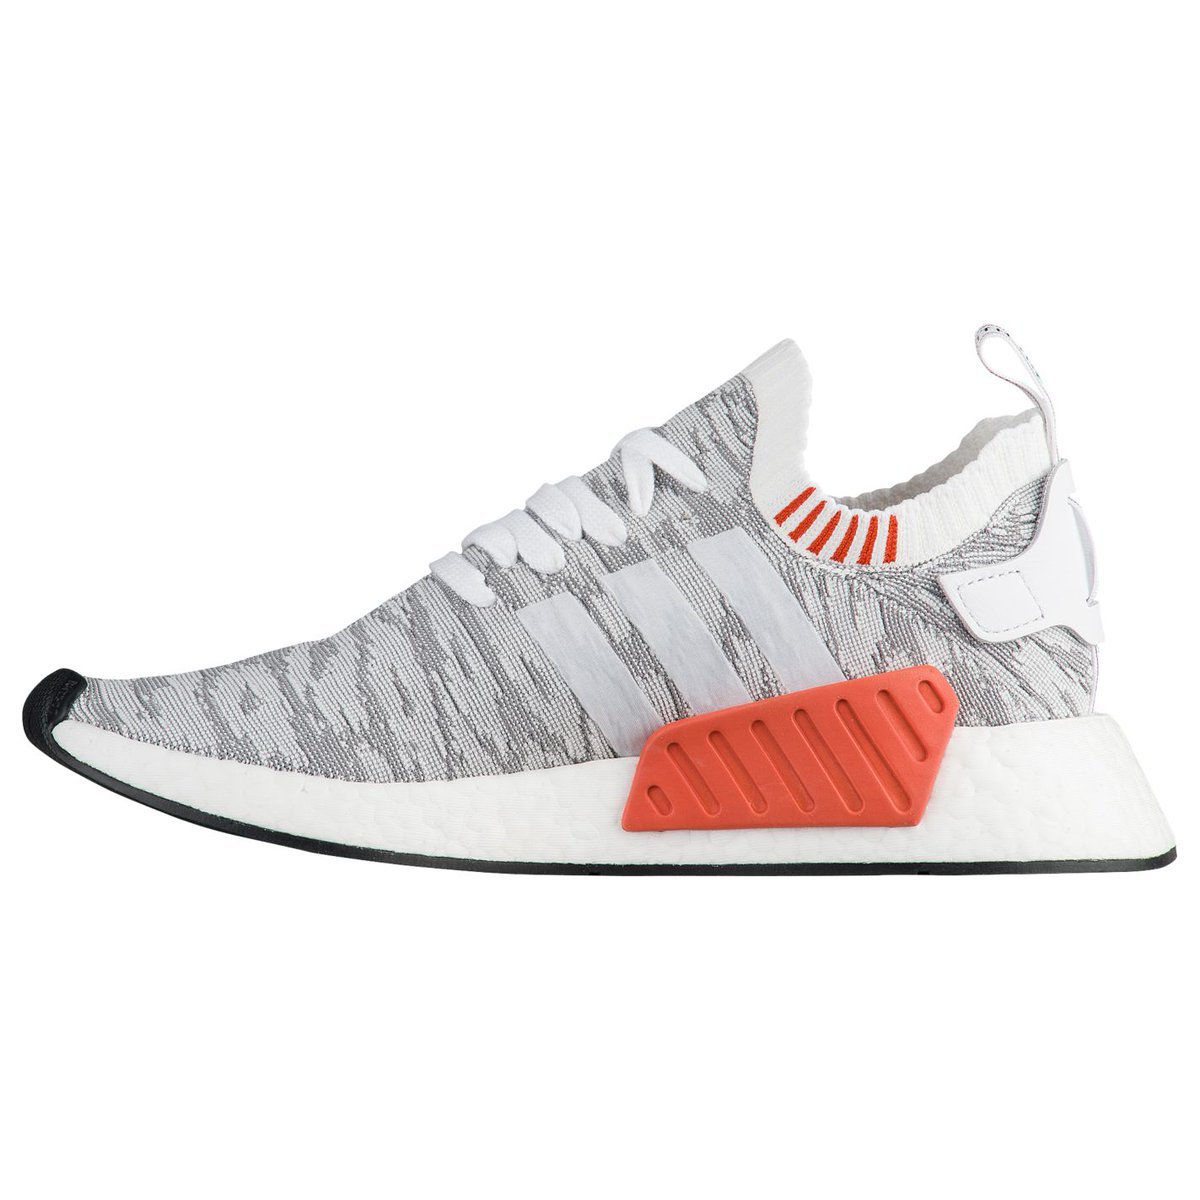 fbc6bbf40 now available adidas originals nmd r2 men s collection buy now at